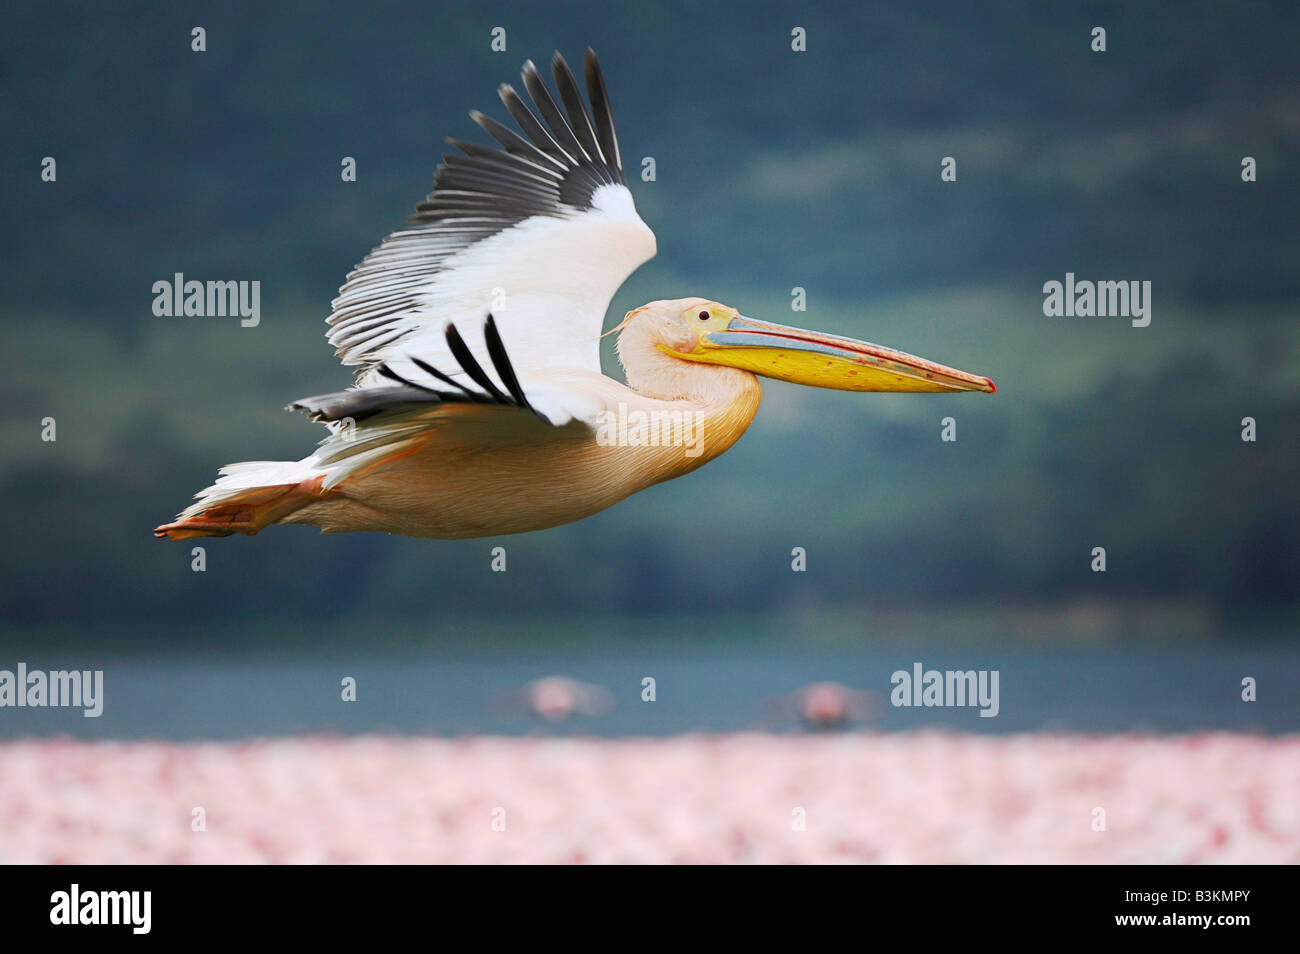 Eastern White Pelican Pelecanus onocrotalus adult in flight Lake Nakuru Kenya Africa - Stock Image